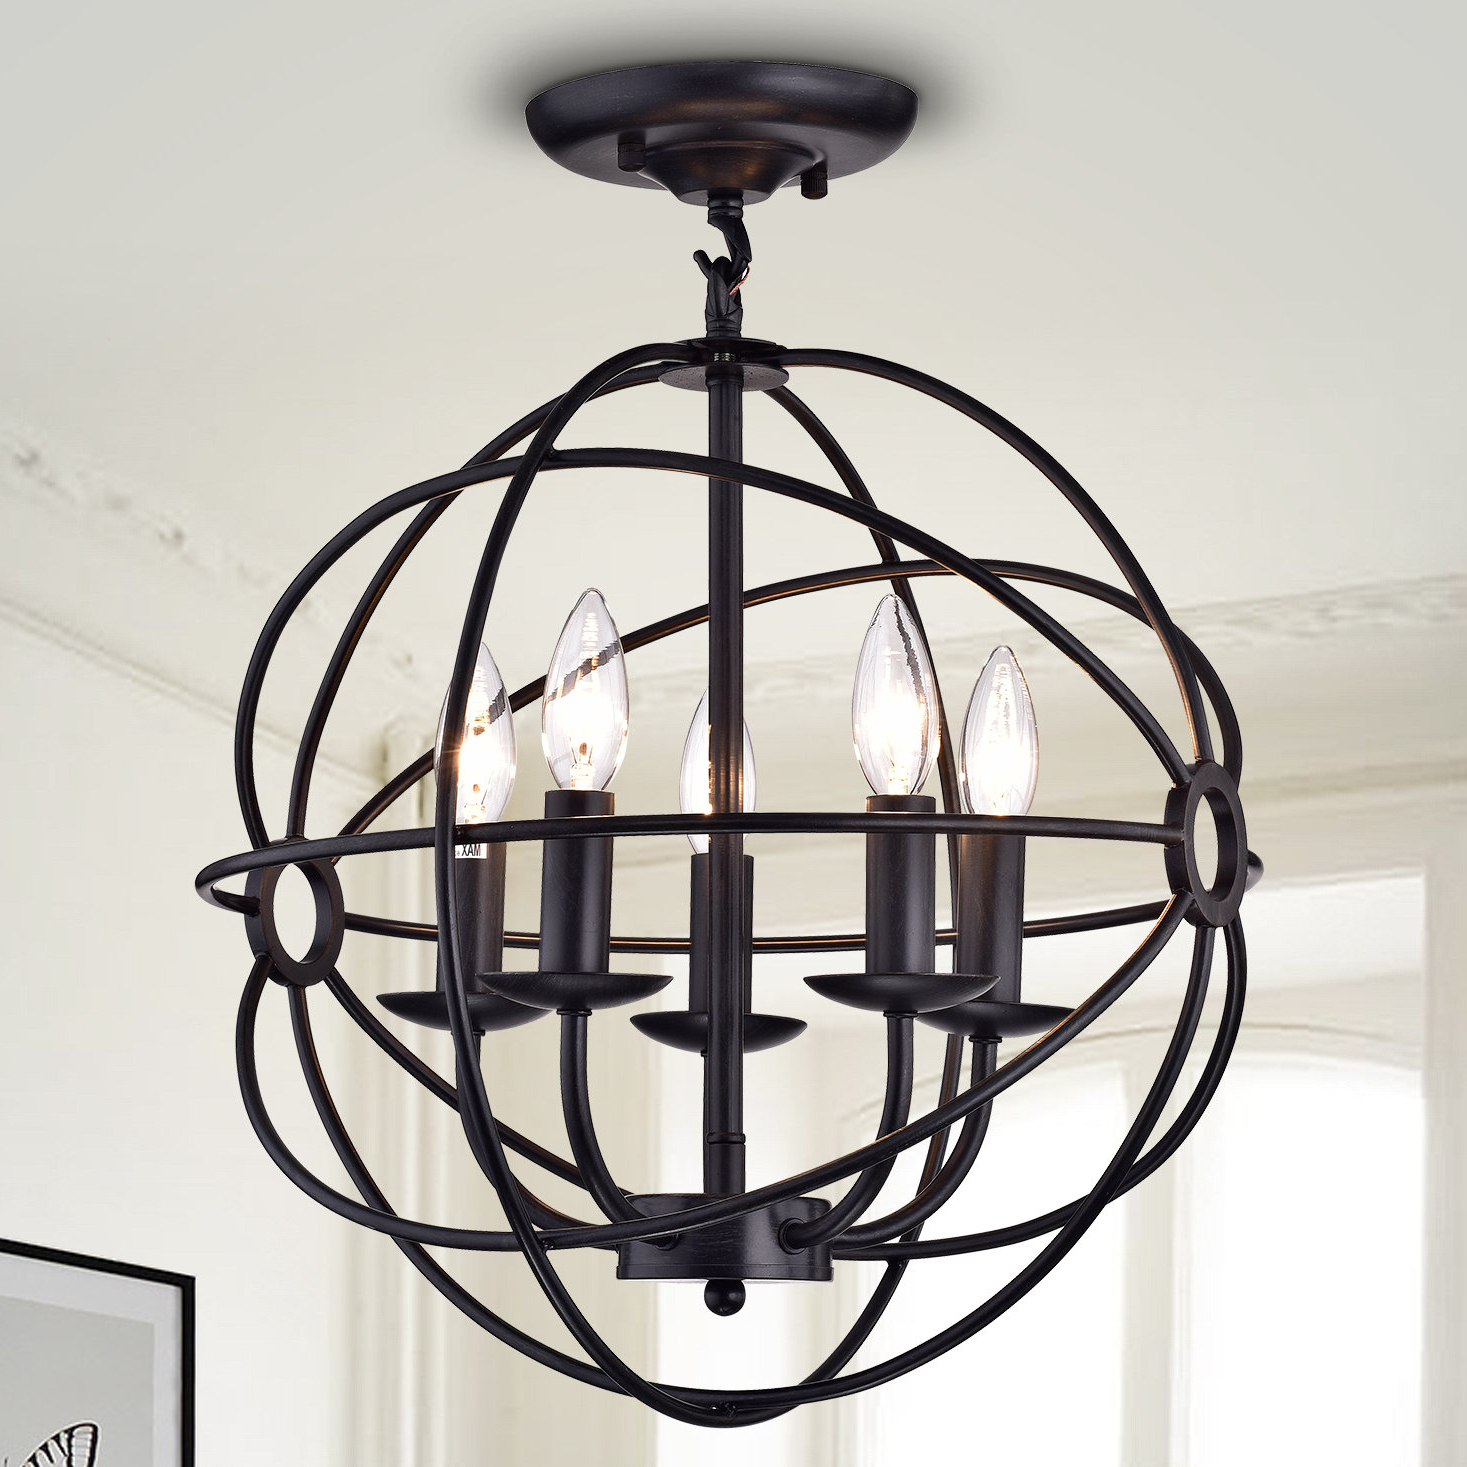 Waldron 5 Light Globe Chandeliers For Most Recent Hankinson 5 Light Globe (View 13 of 20)